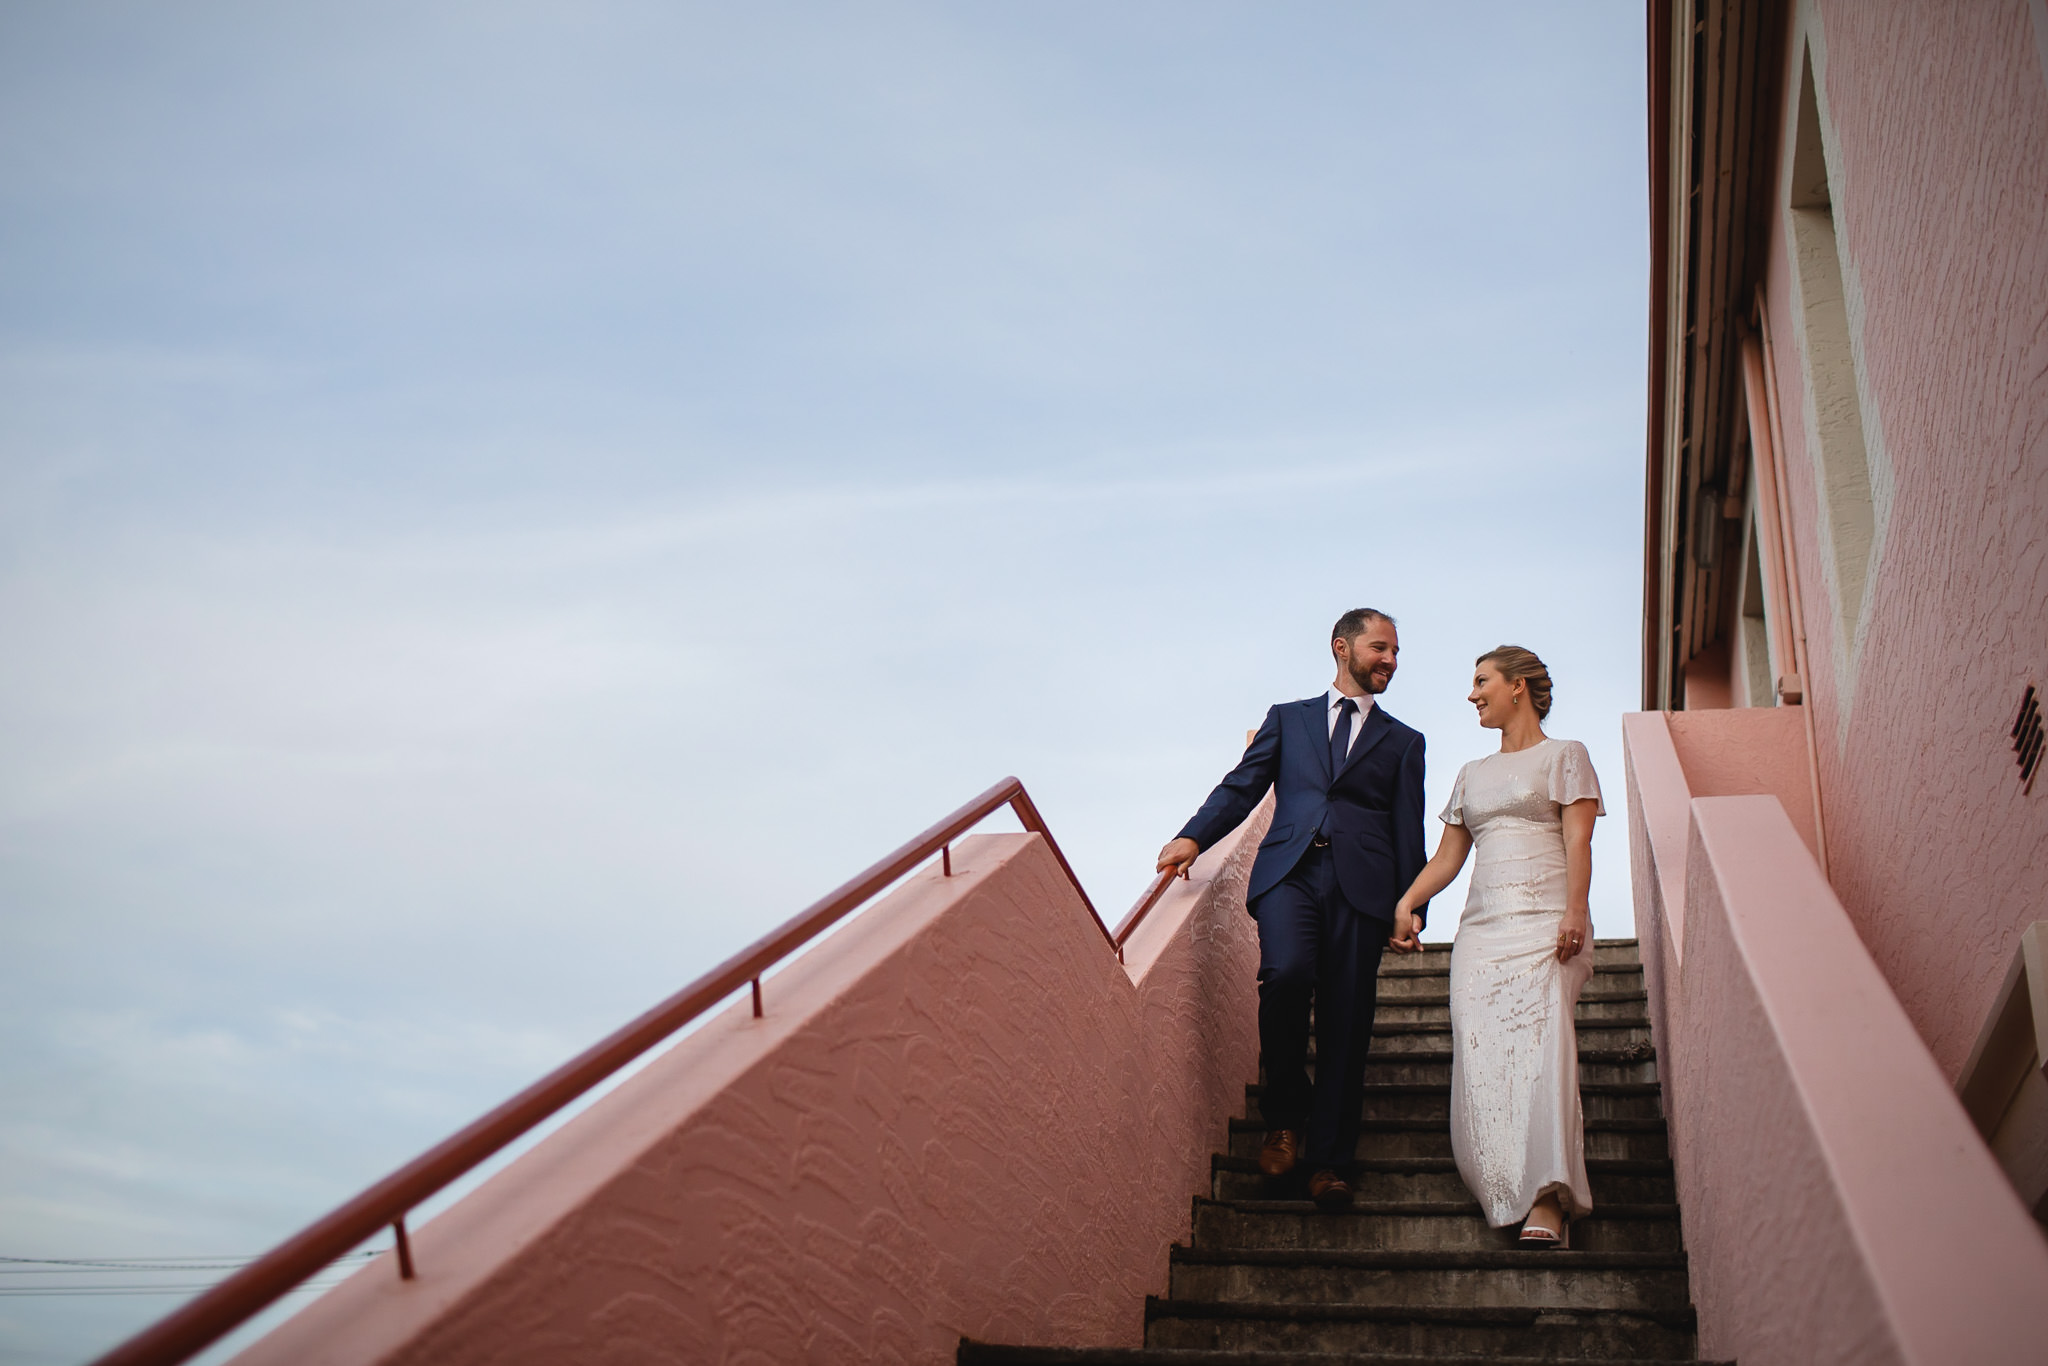 Bride and groom walking down pink staircase at Bunbury Regional Art Gallery with blue sky in background